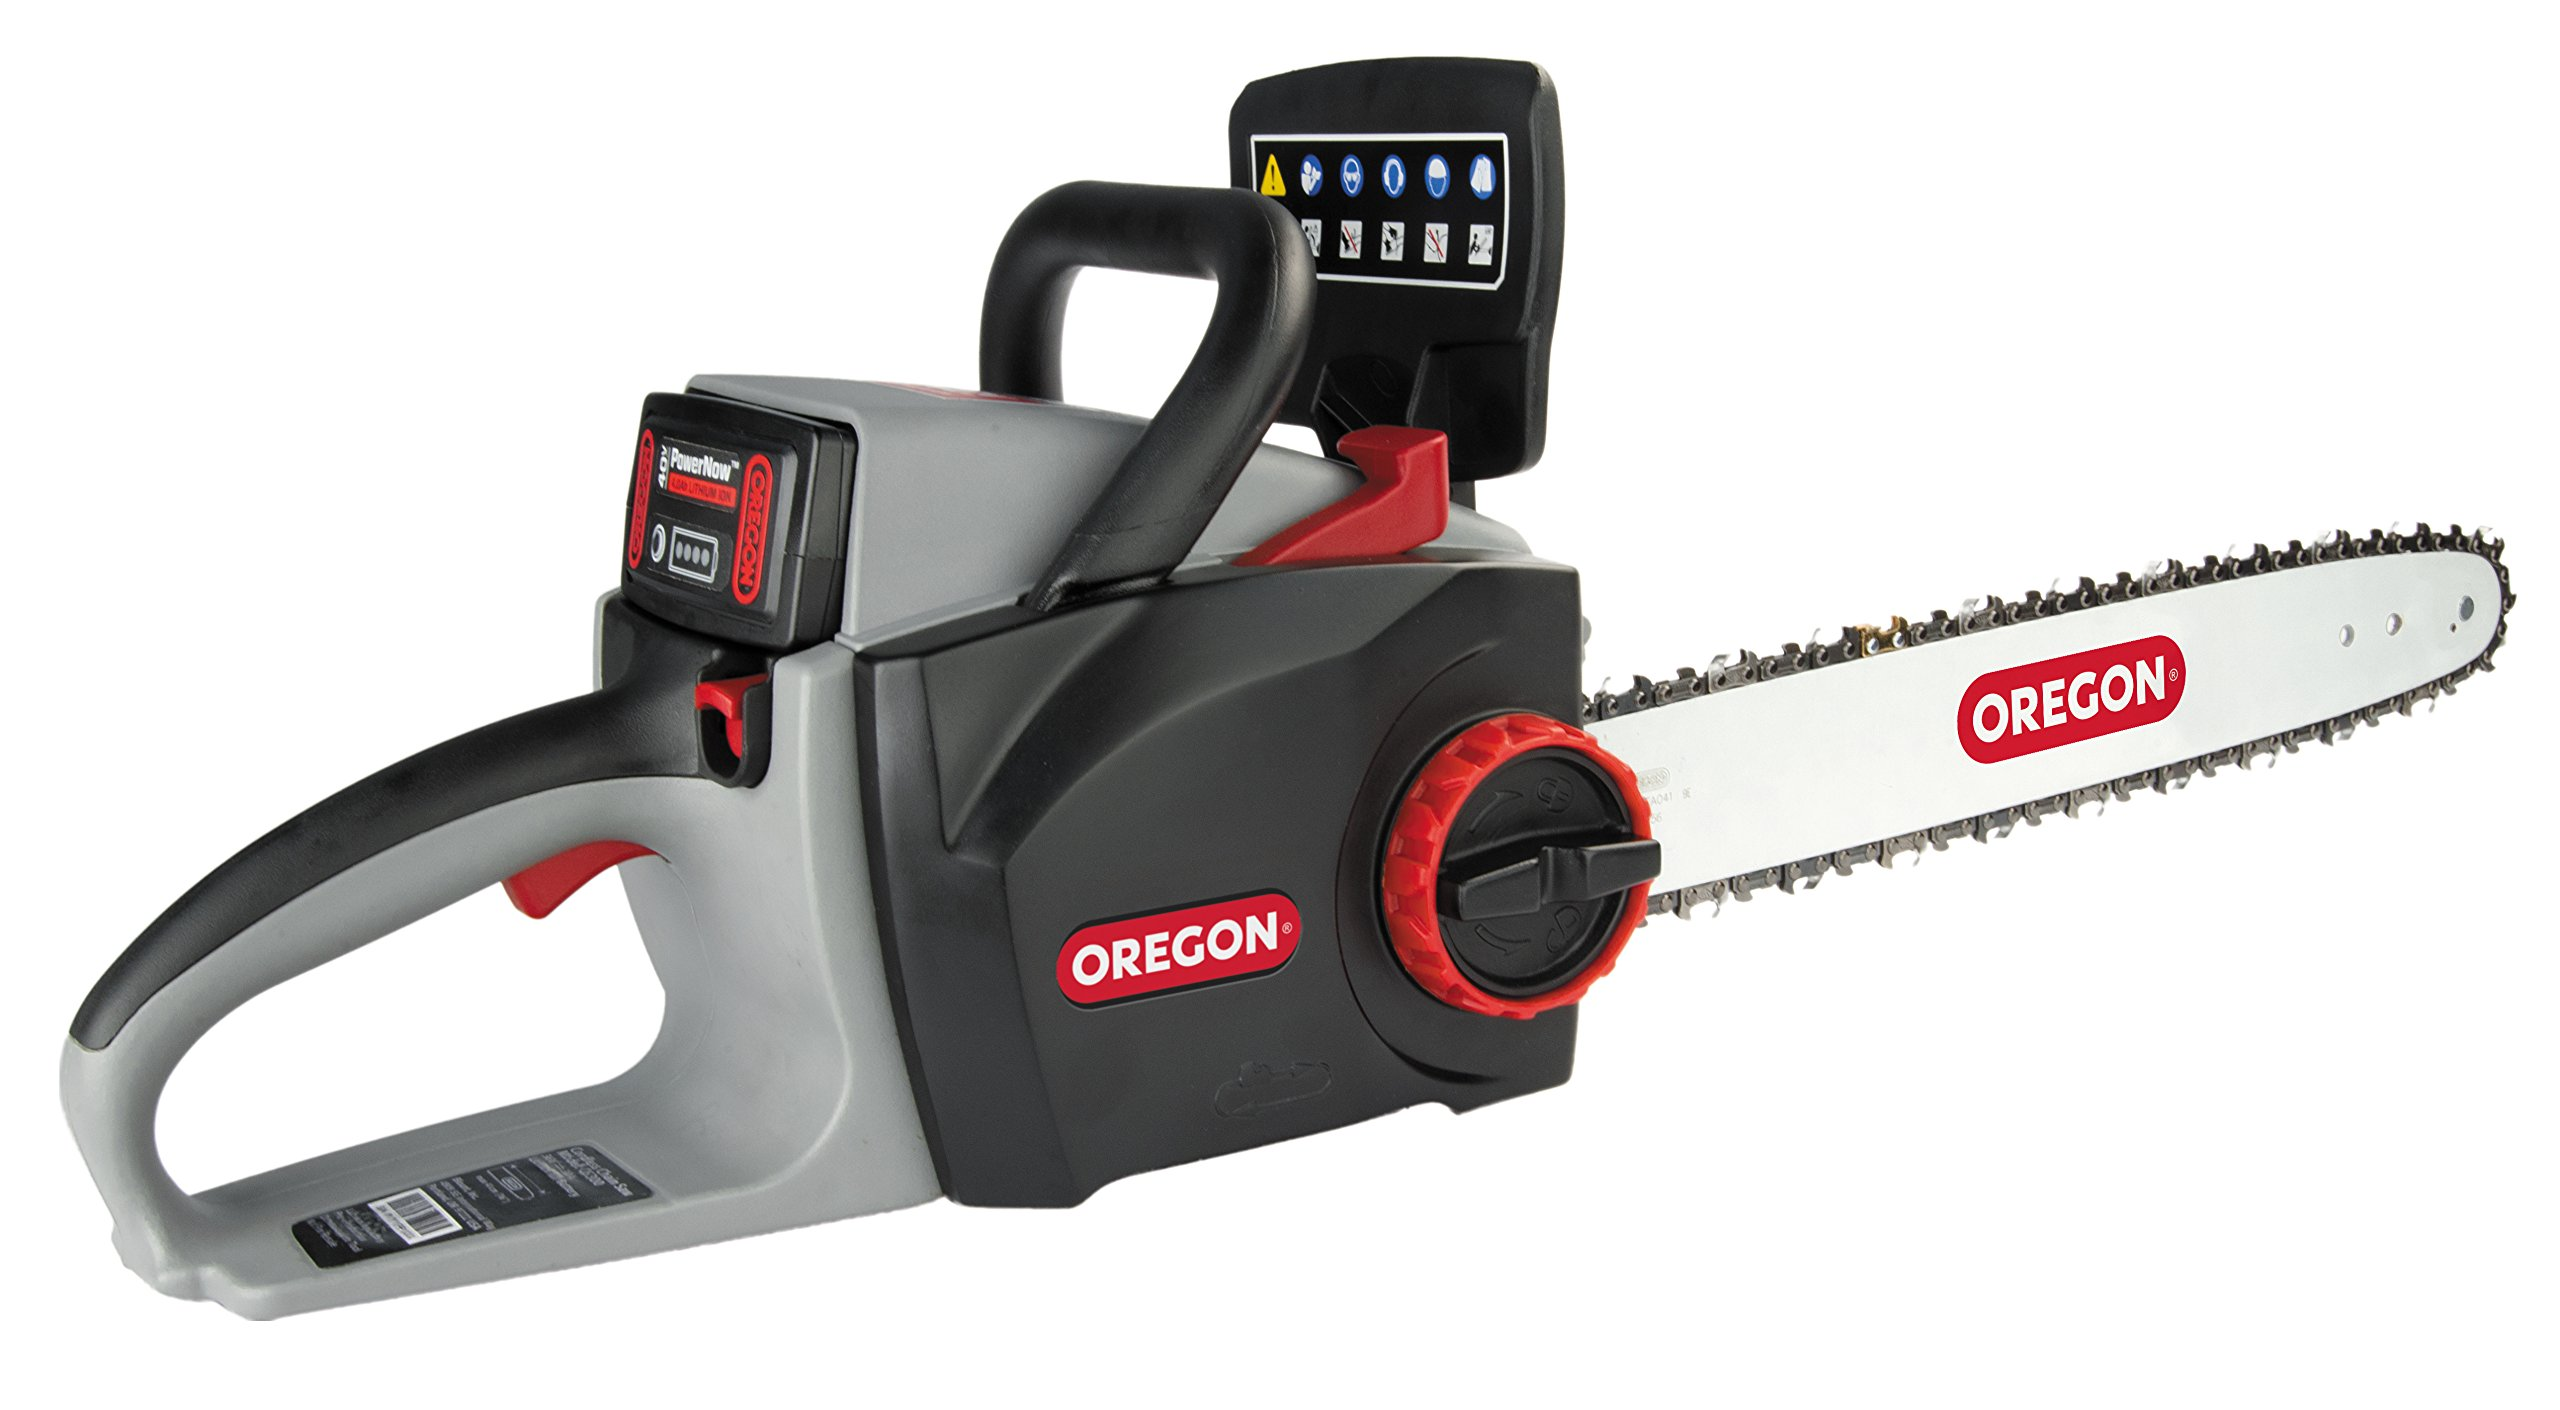 Oregon Cordless CS300-A6 Chainsaw Kit with 4.0 Ah Battery and Charger